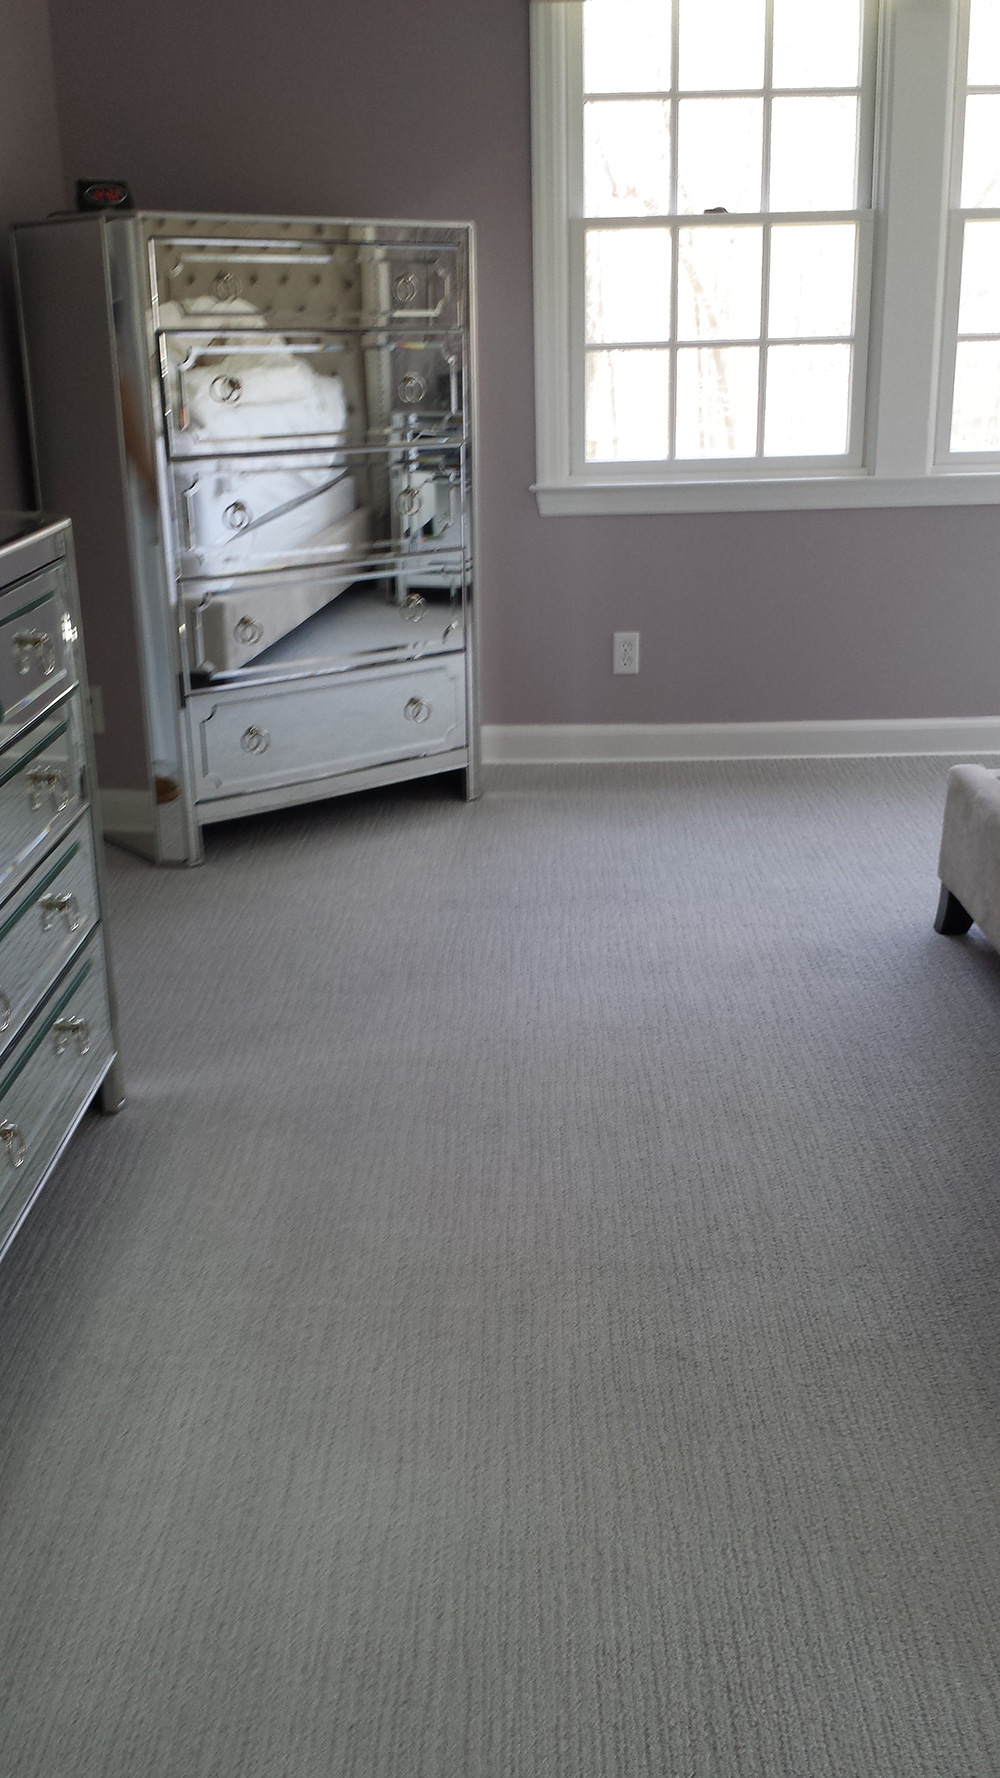 Suburban floors flooring for westchester county new york 20140425114954 doublecrazyfo Image collections